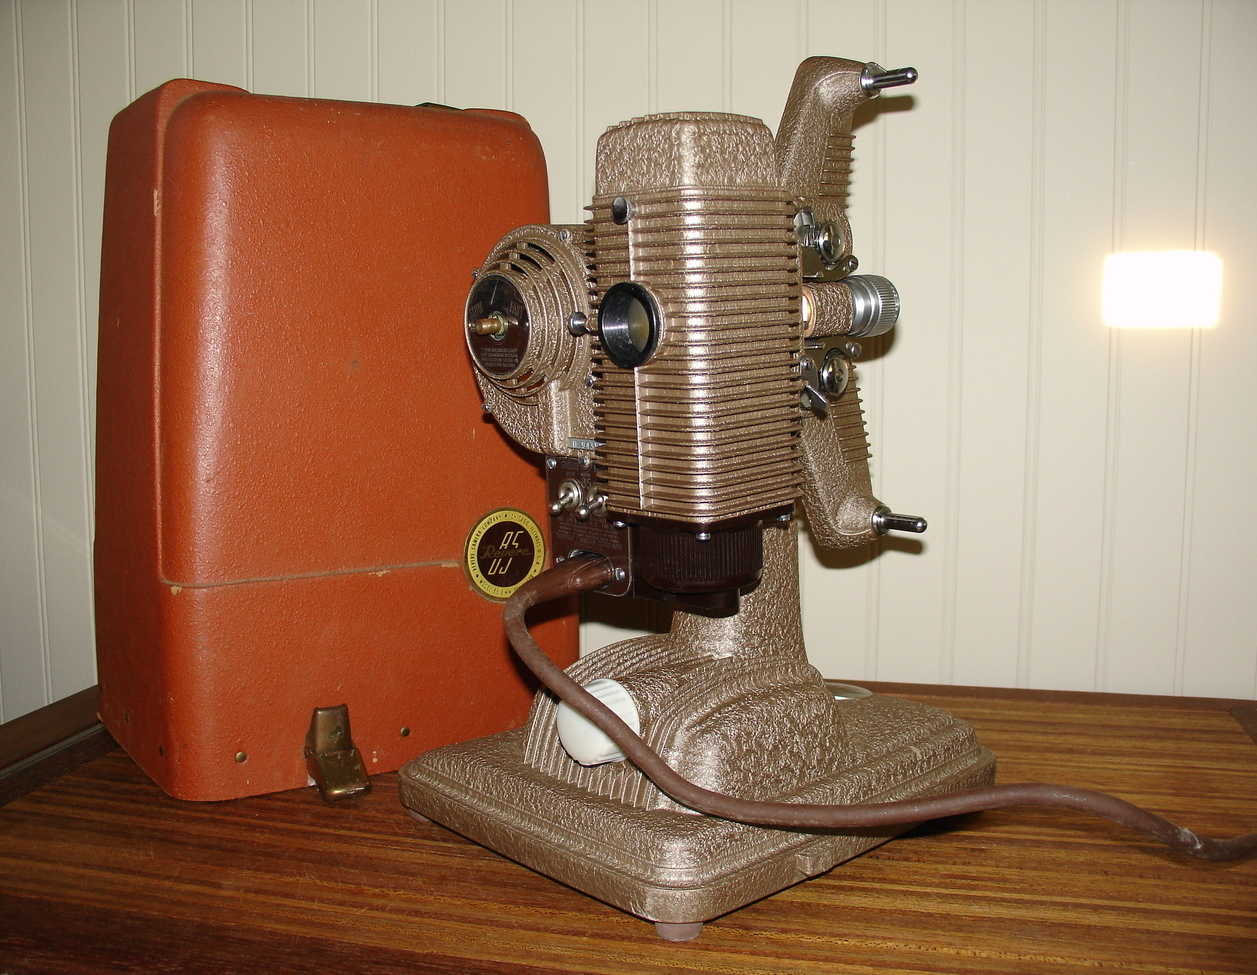 Revere 85 8 mm Movie Projector- Works Perfectly! 1940's-50's